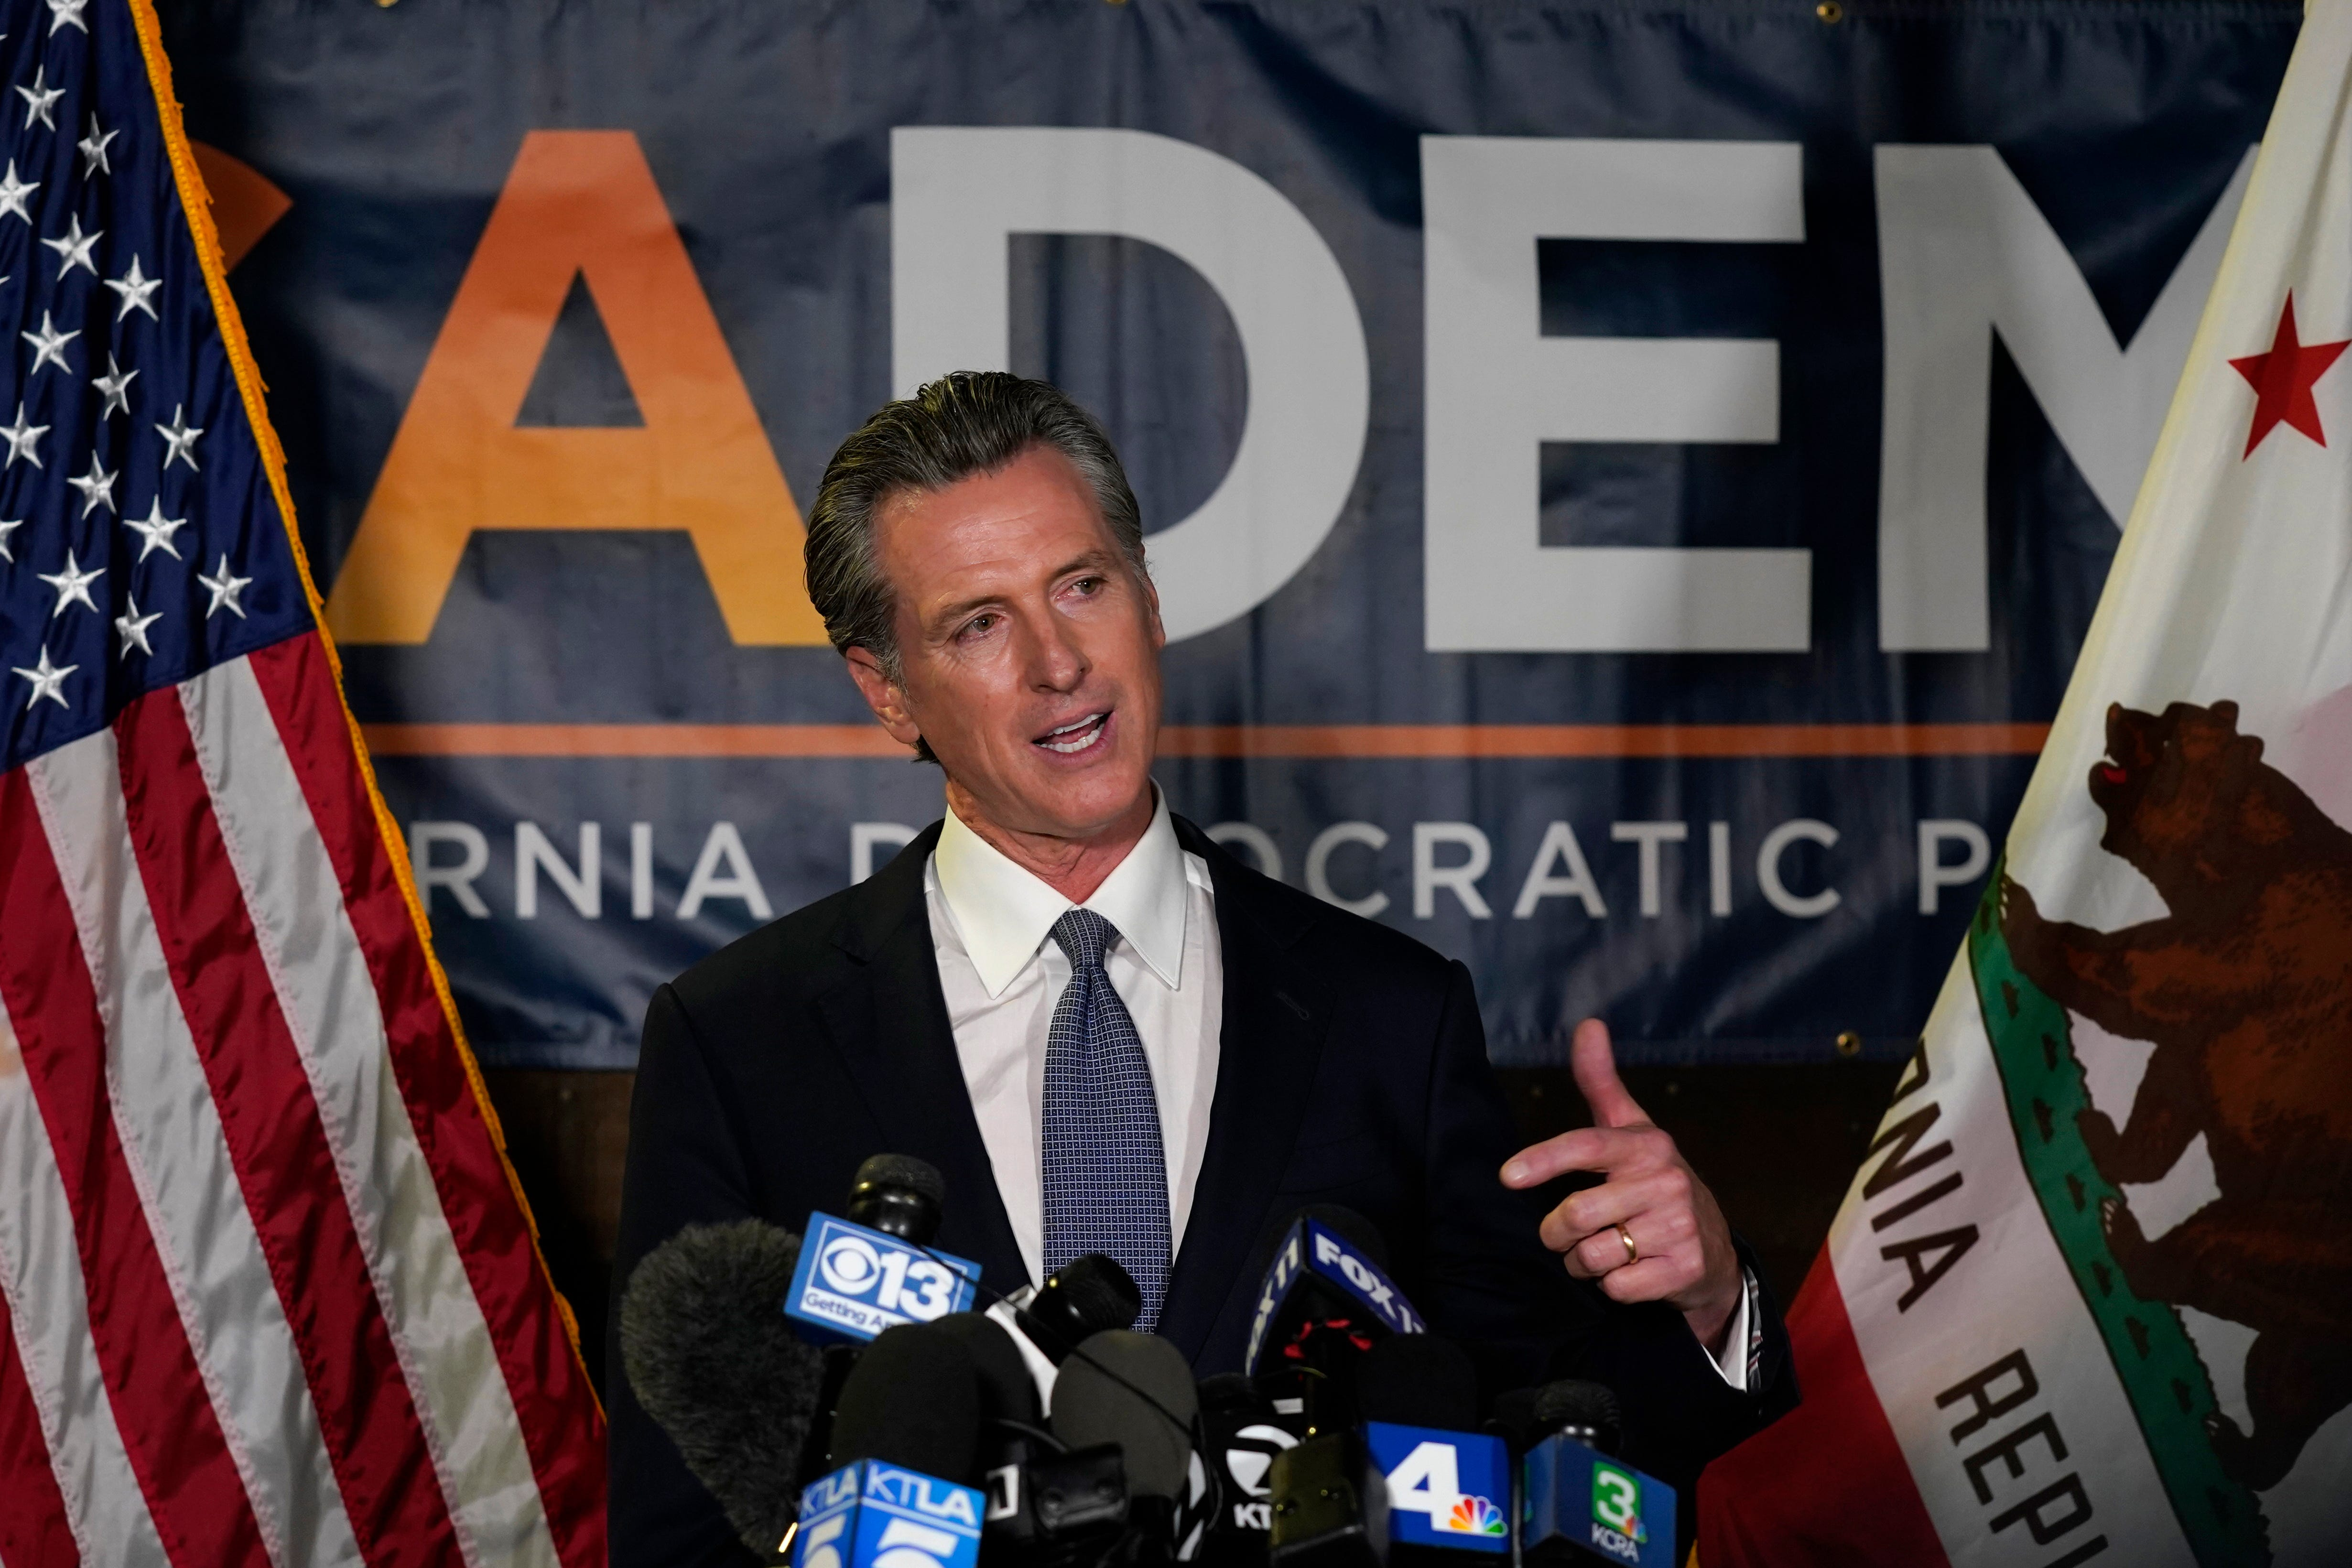 How did California Gov. Gavin Newsom so easily beat back a recall attempt? There are too few Republicans to vote him out.